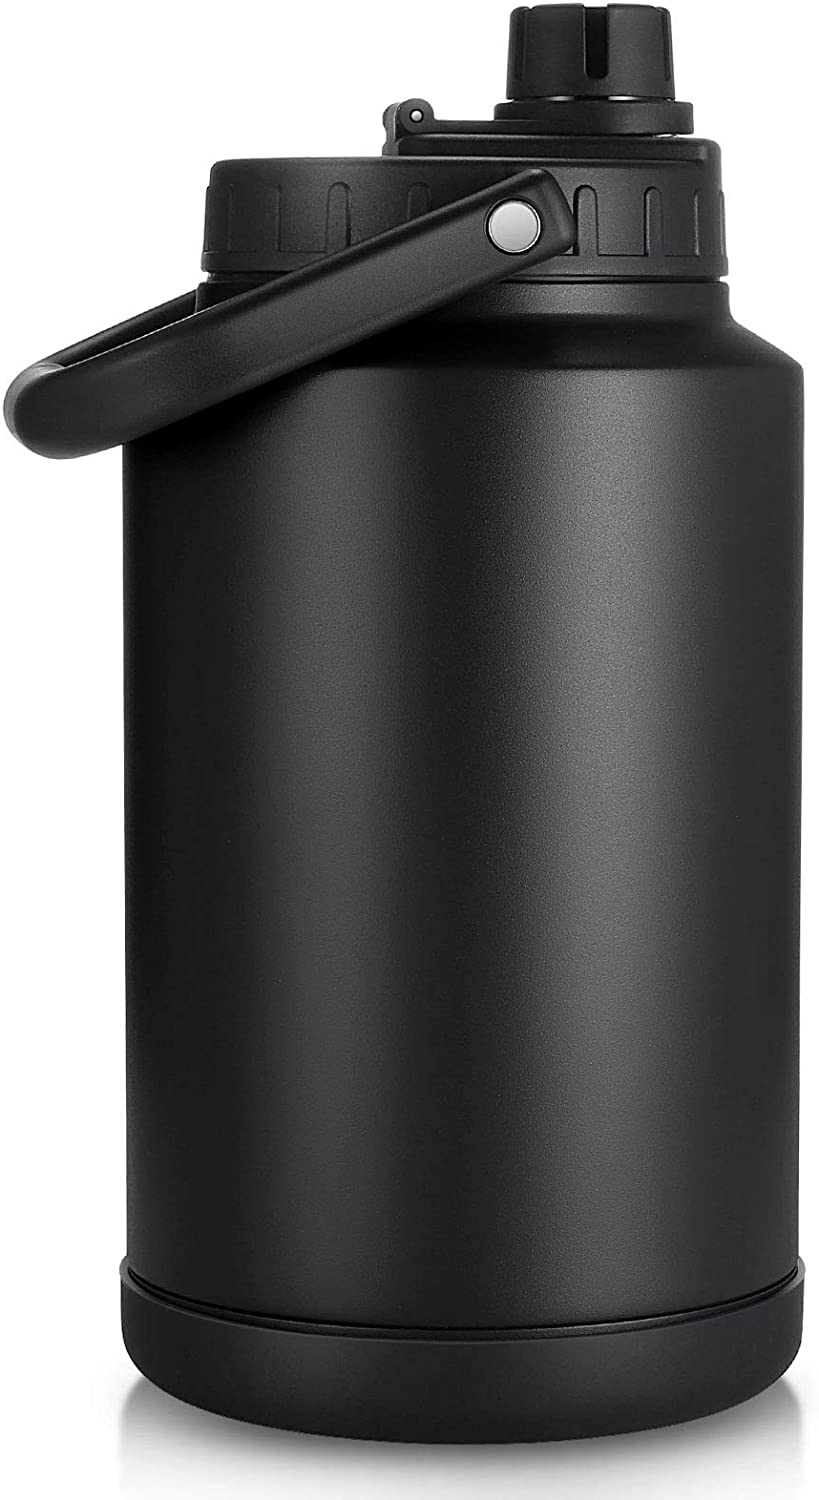 Sursip 128 Oz Water Bottle,Vacuum Insulated Stainless Steel Double Walled Water Jug,Thermos Water Bottle for Hot and Cold Drinks,Durable and Resistant Water Flask-One Gallon(Black)